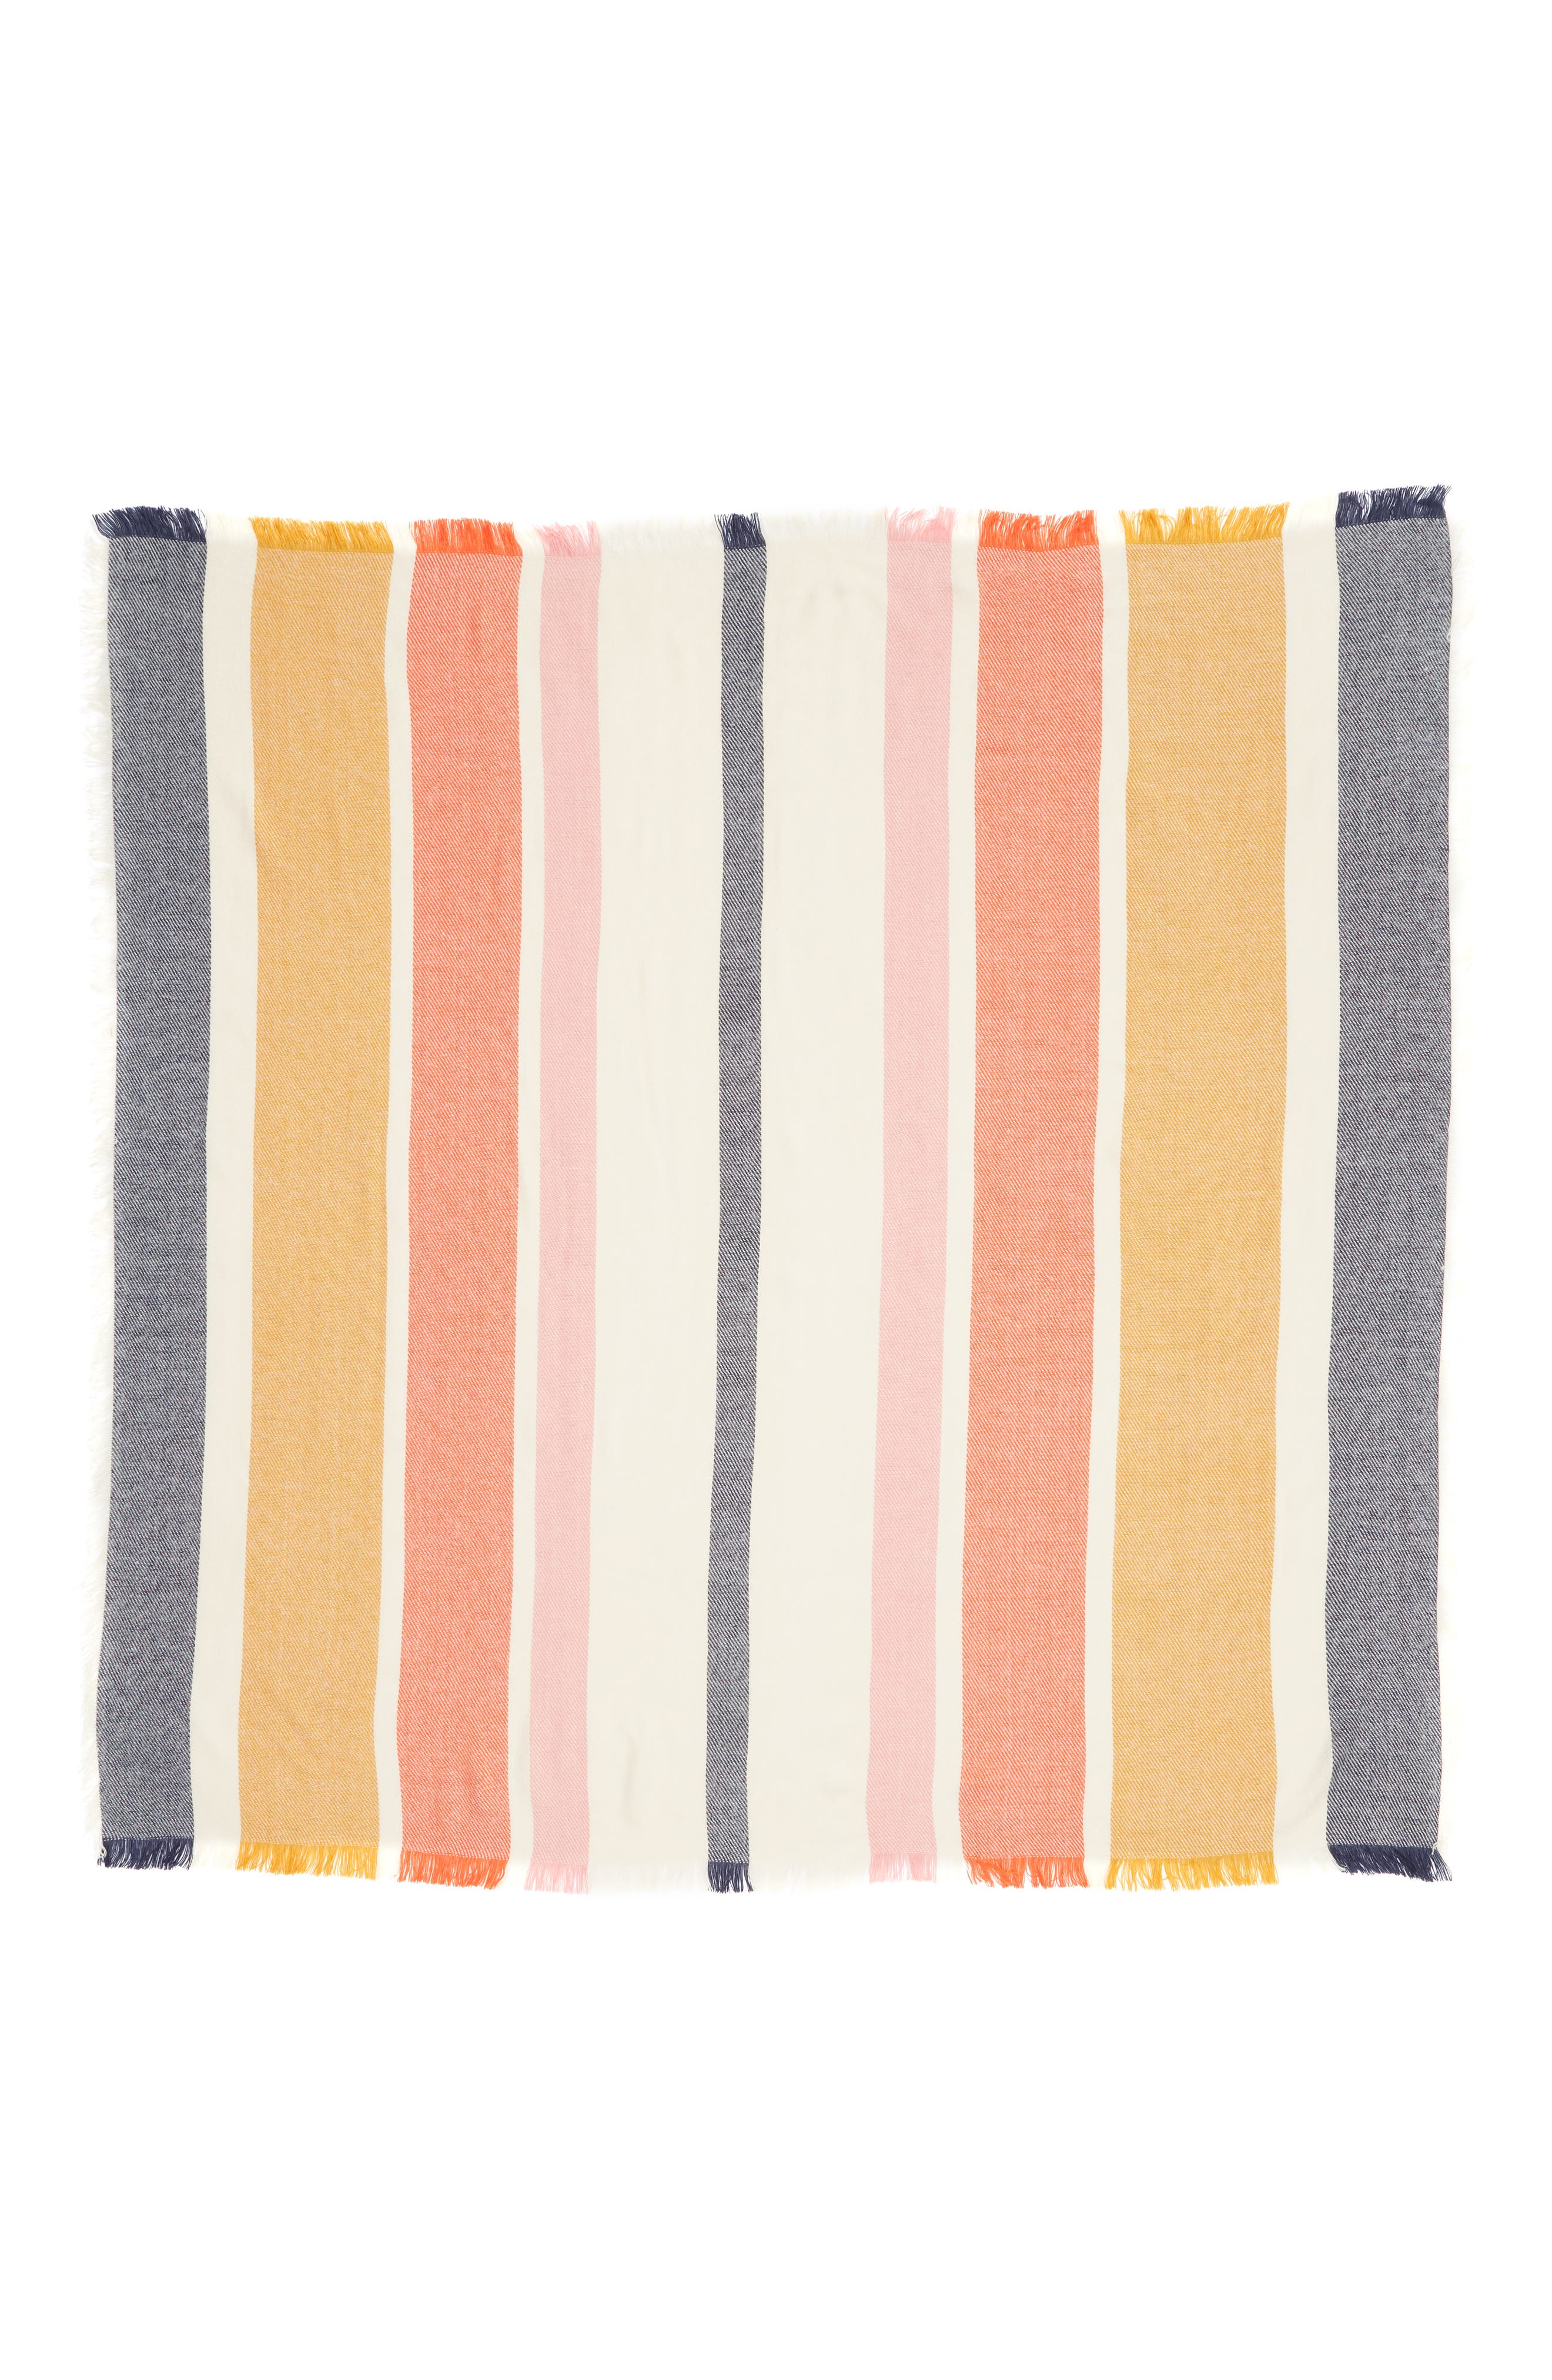 MADEWELL,                             Stripe Blanket Scarf,                             Alternate thumbnail 3, color,                             400